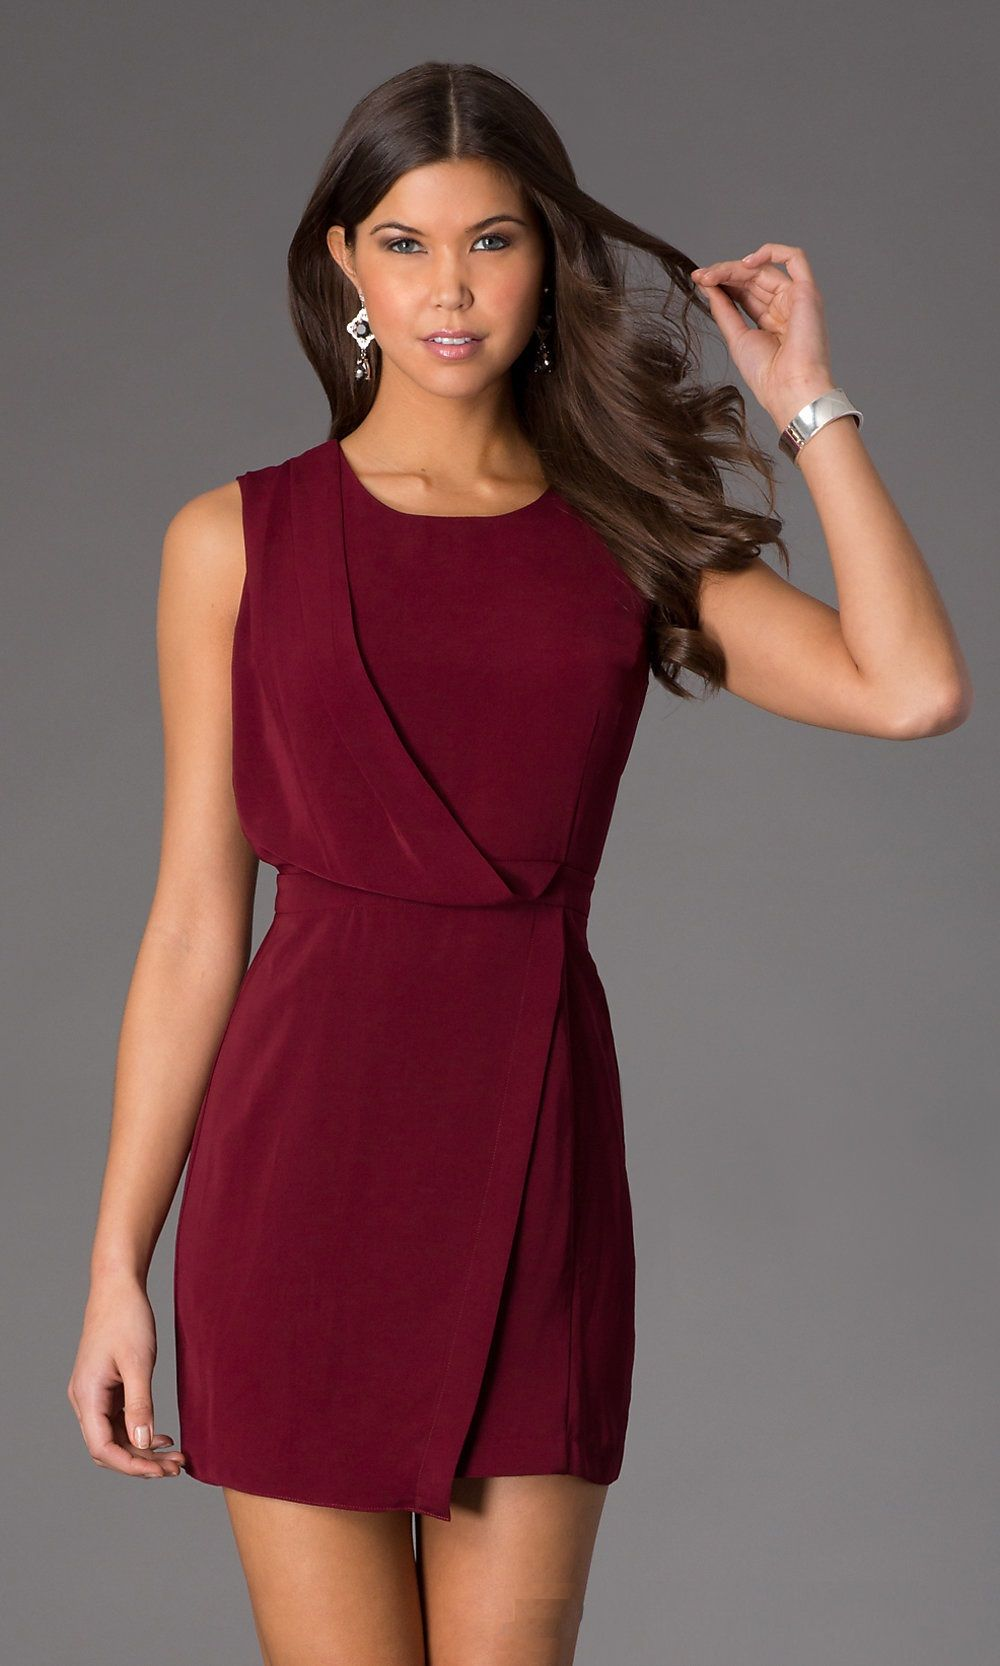 d5198612f087 Semi Formal Dresses For Women for All Occasions